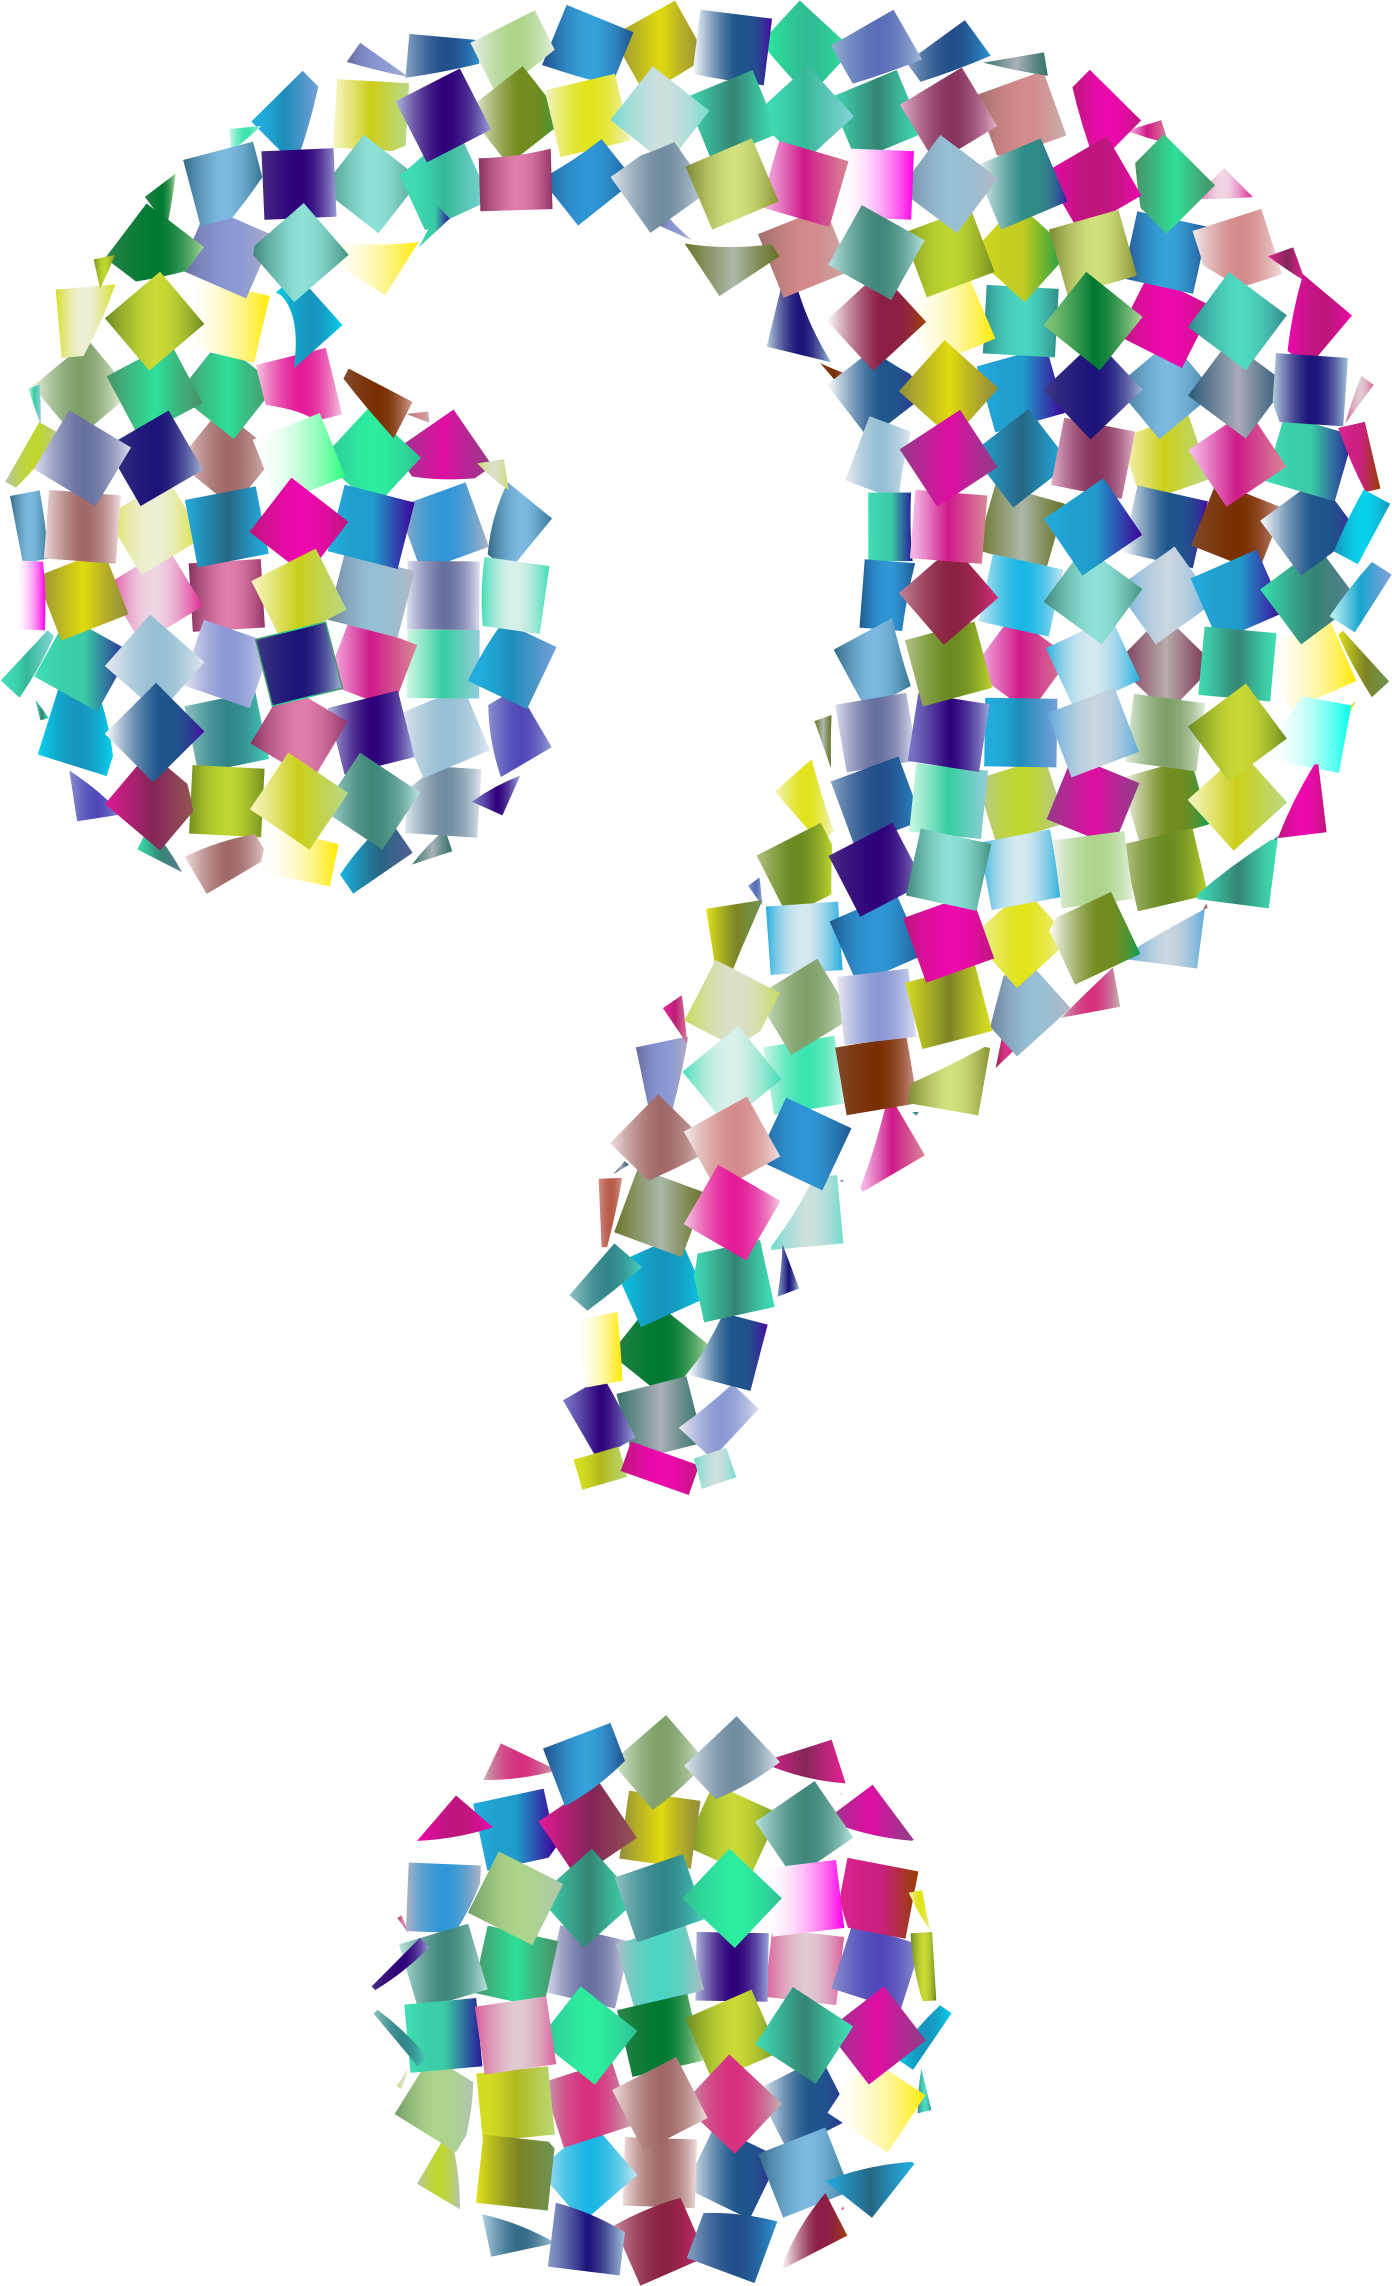 Confetti clipart sprinkles. Prismatic question mark icons